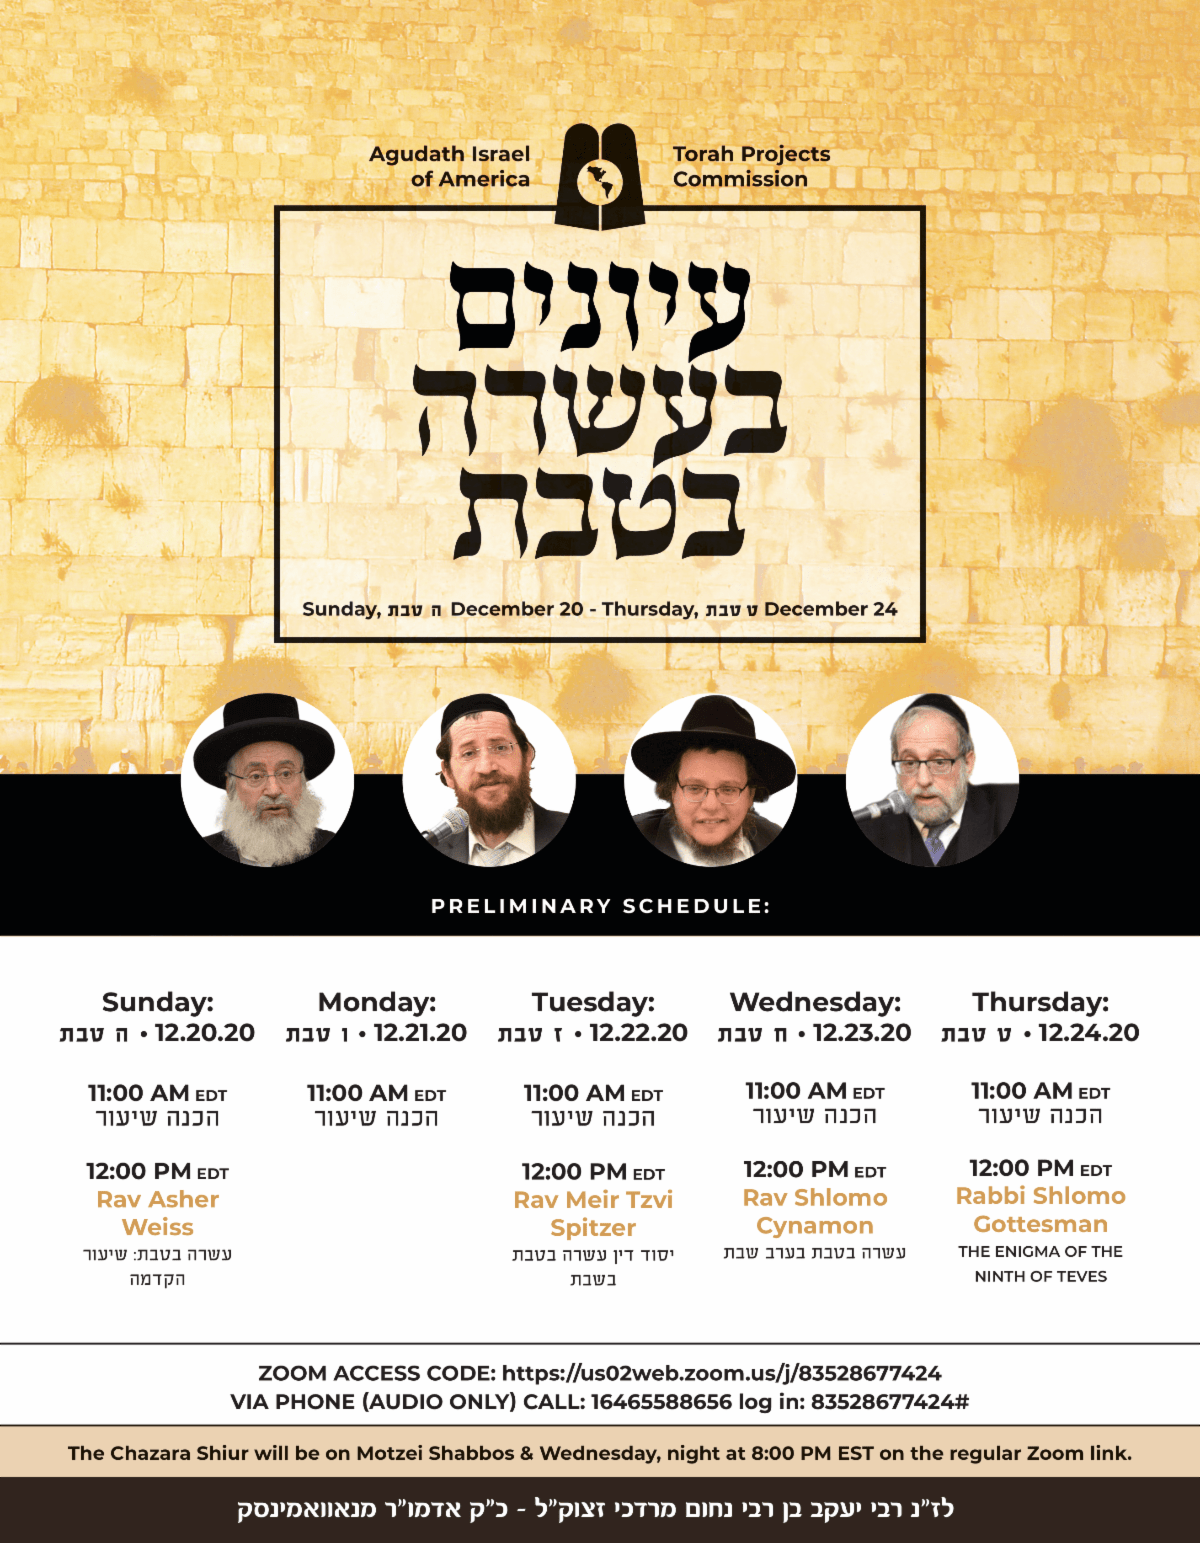 3 Great Opportunities From Agudath Israel of America 2